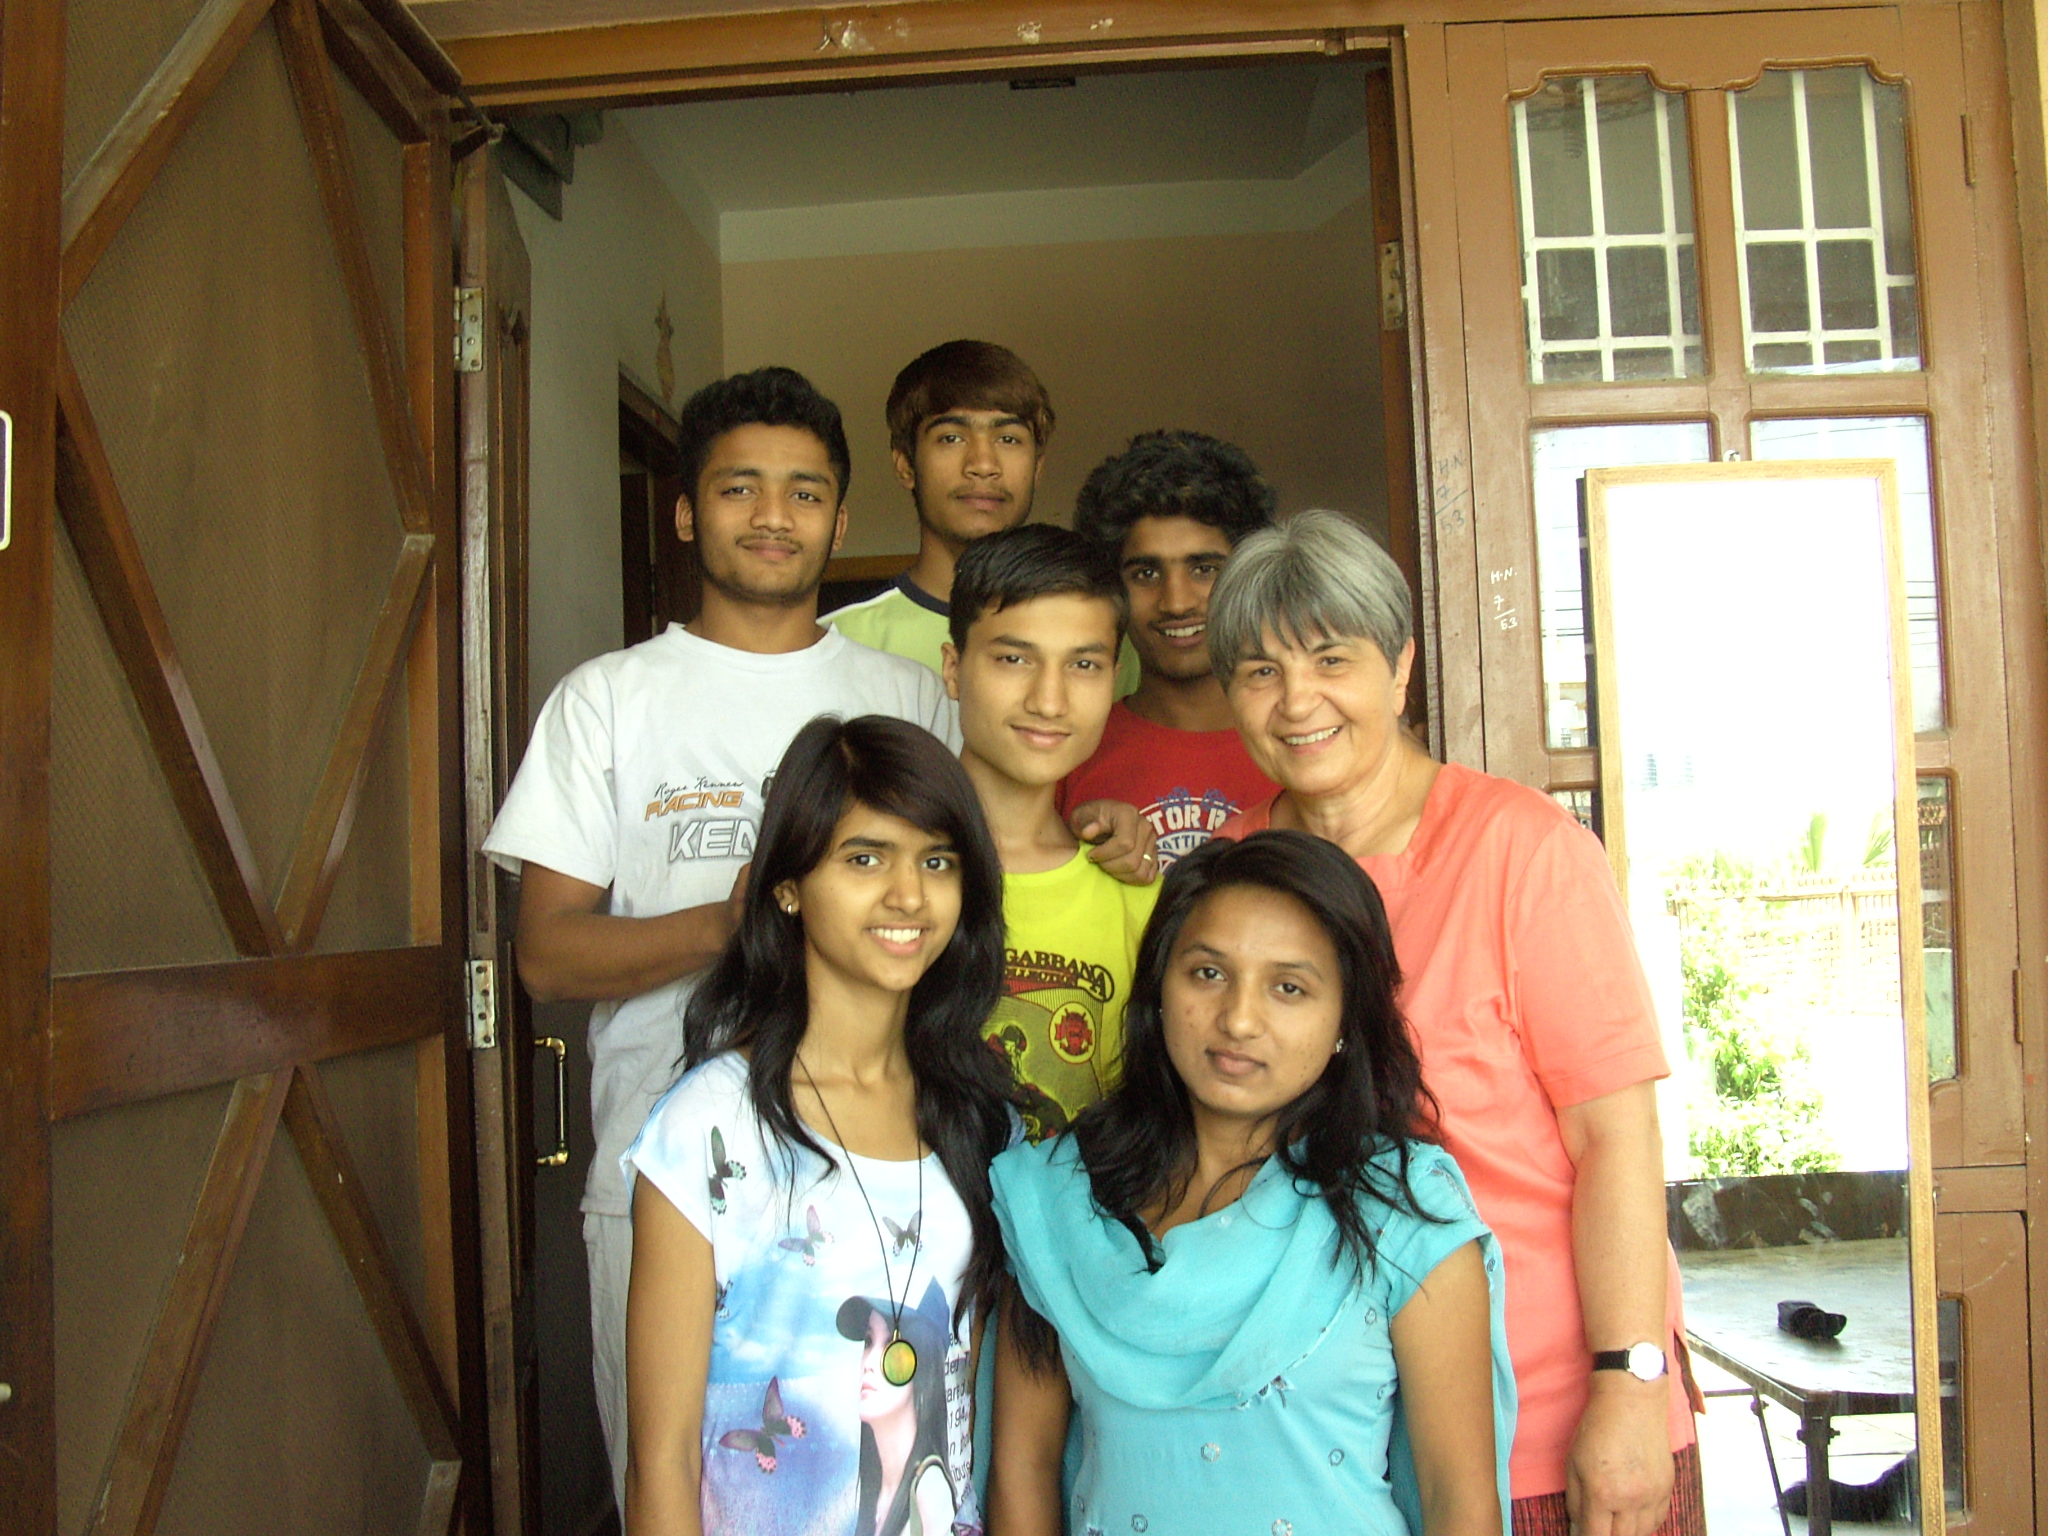 Ellen Dietrich poses with some of the older children from her Home of Hope in Kathmandu, Nepal in 2013.